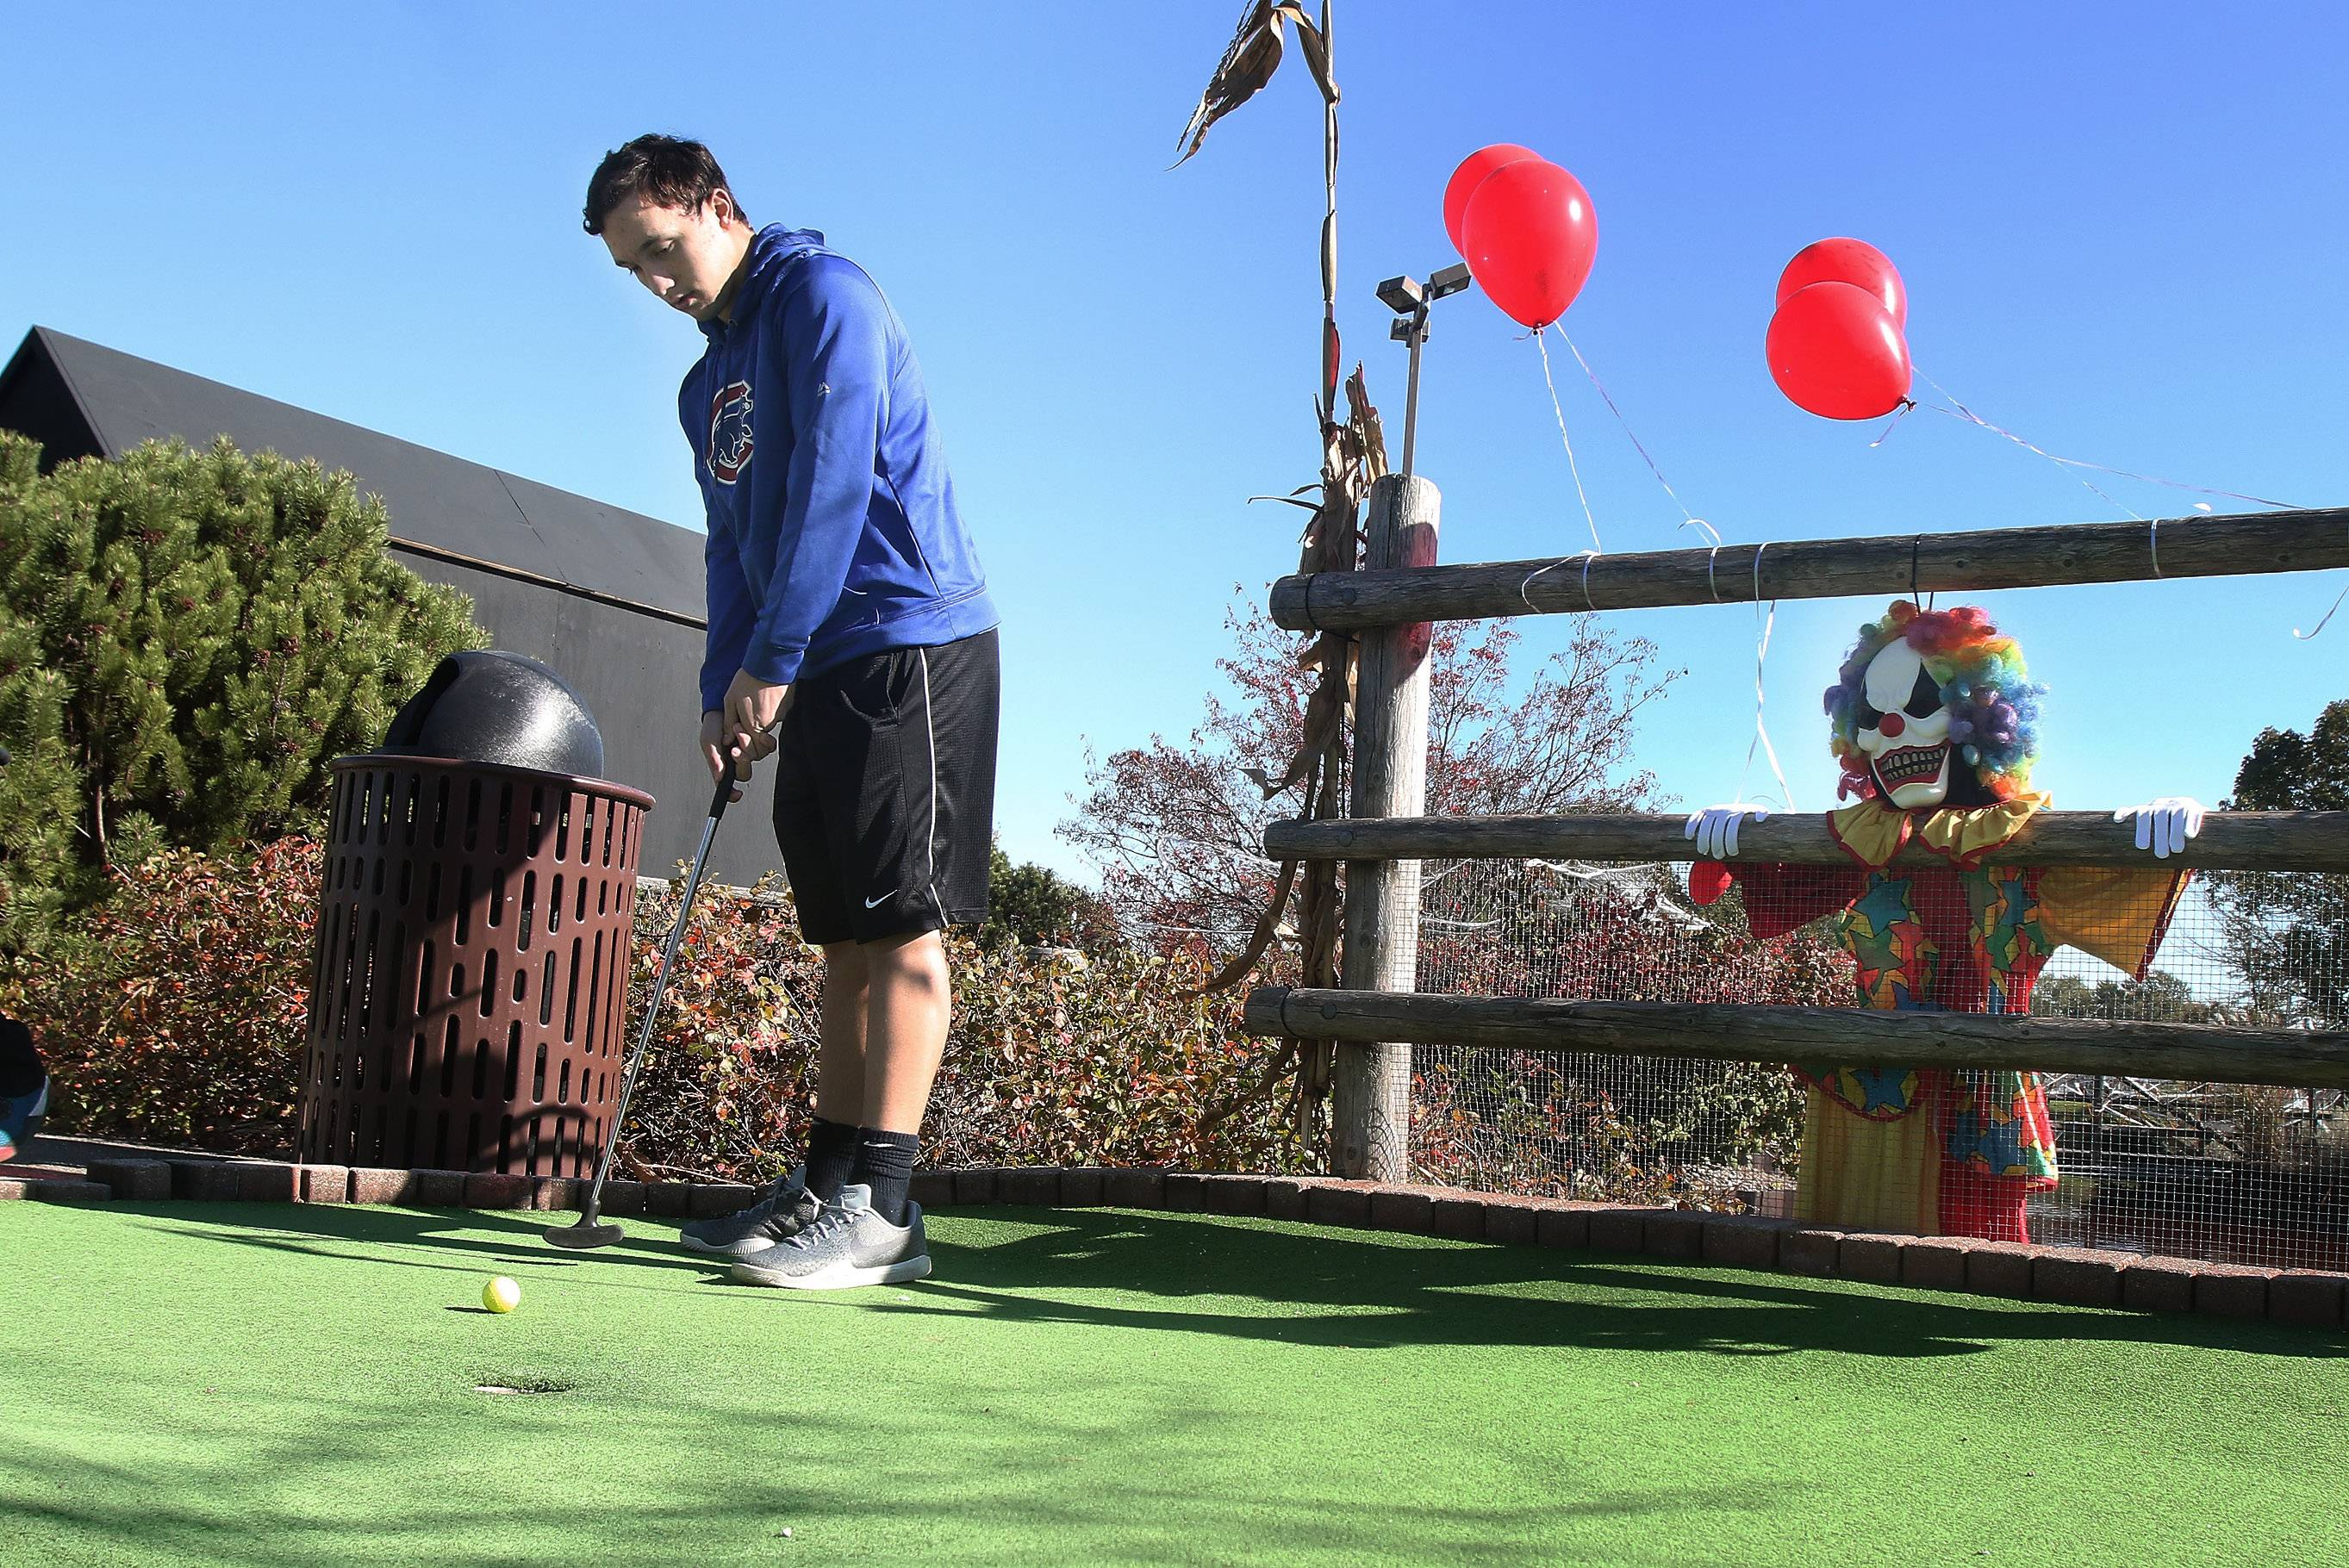 Sixteen-year-old Brett Krambeer of Palatine is under the evil eye of a scary clown as he plays miniature golf during Haunted Hole-A-Ween on Sunday at Mountain View Adventure Center in Des Plaines. Golfers had to navigate around skeletons, ghosts, crazy clowns and vultures as they worked their way around the course.